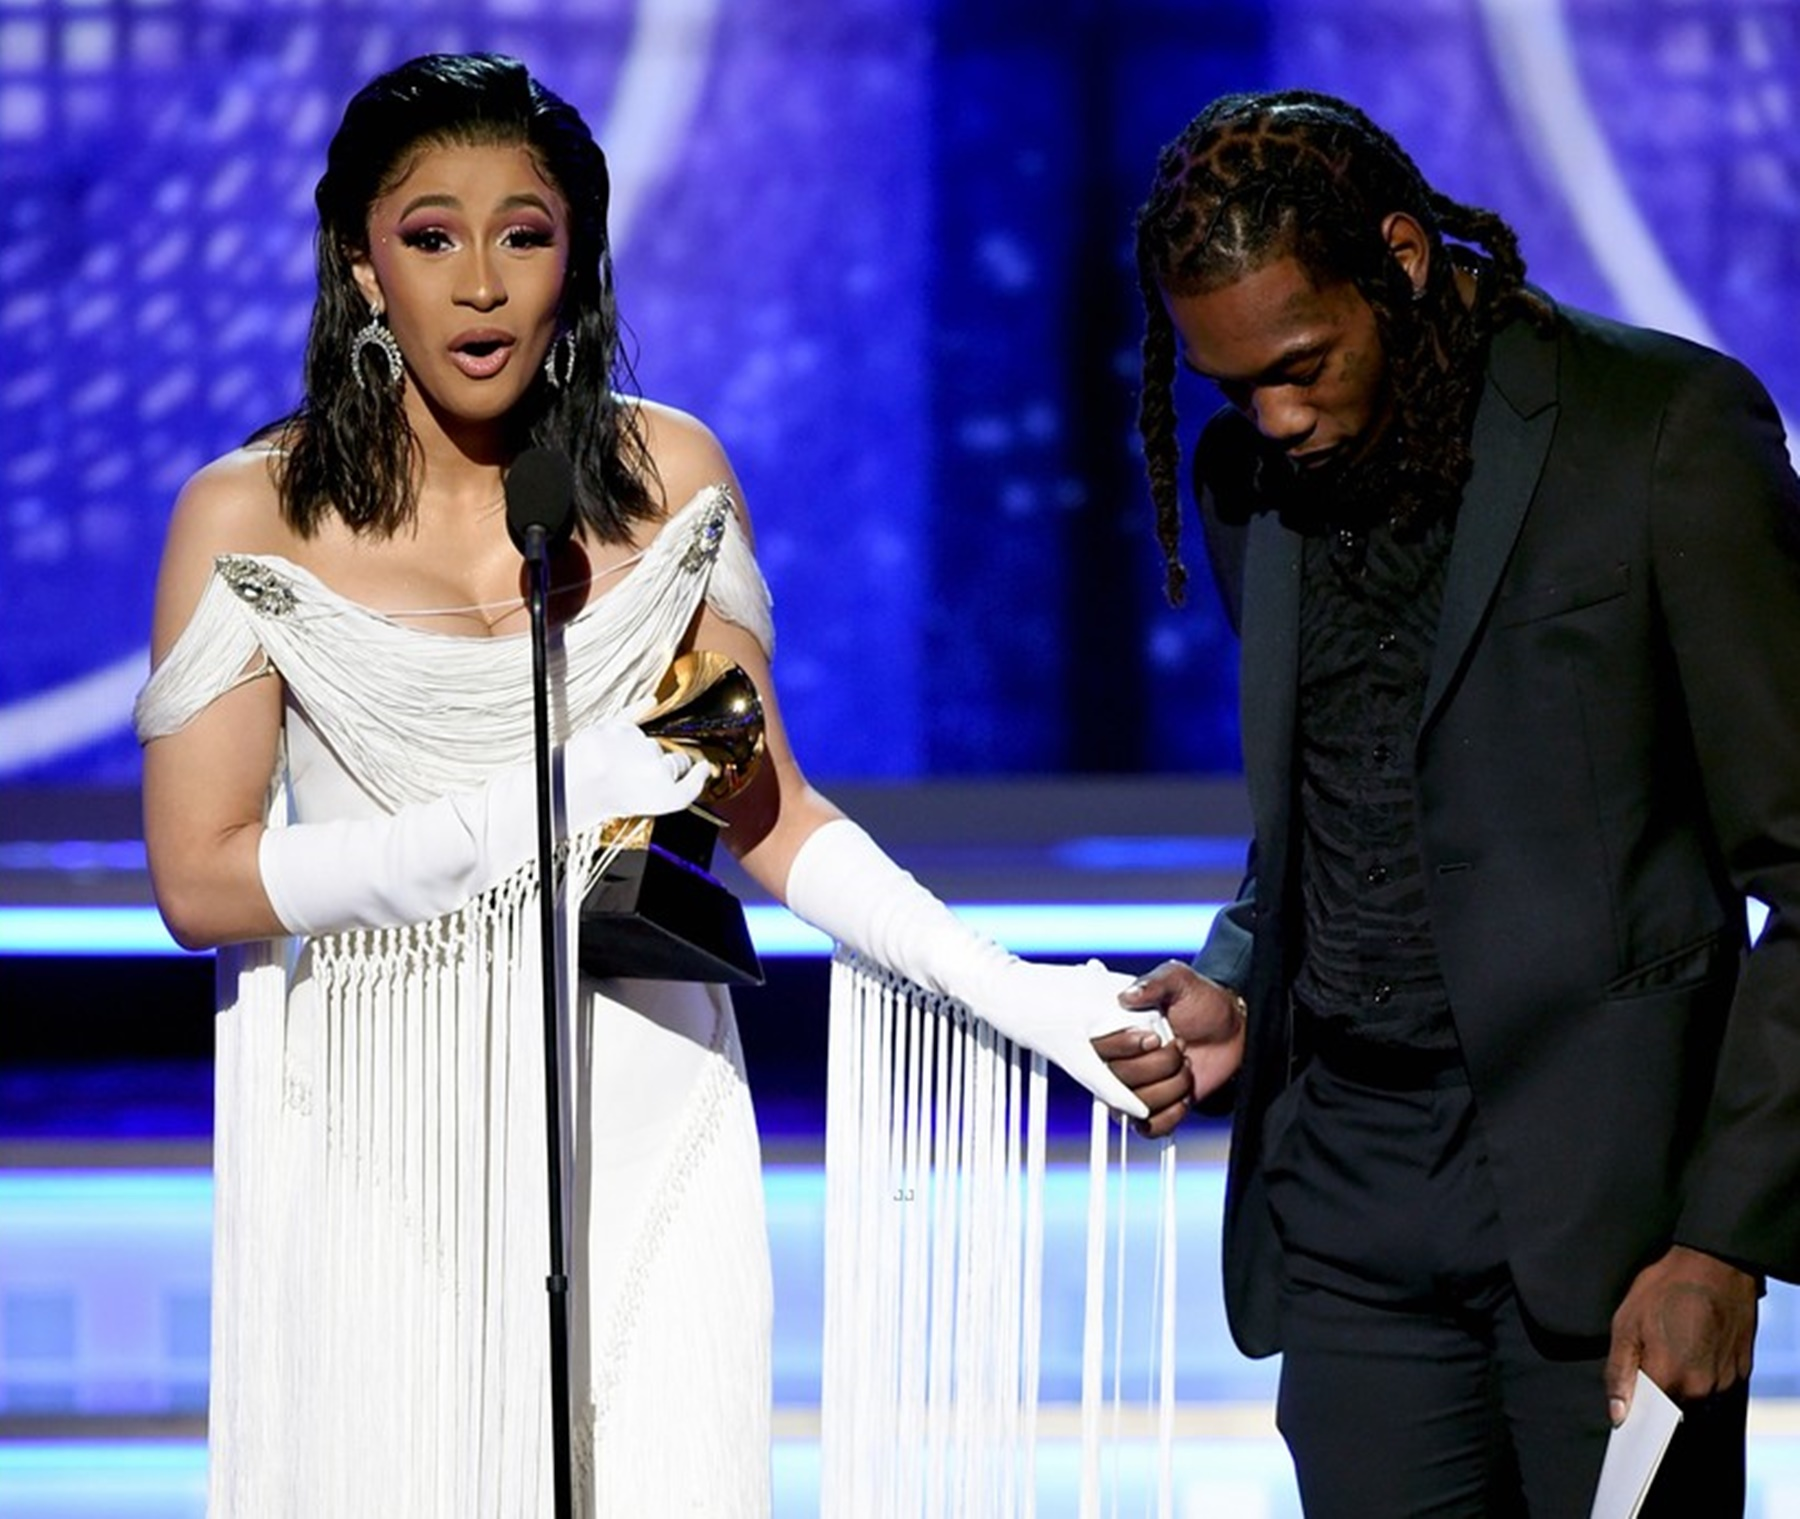 Cardi B Deactivates Instagram Account After Expletive Filled Grammys 2019 Rant